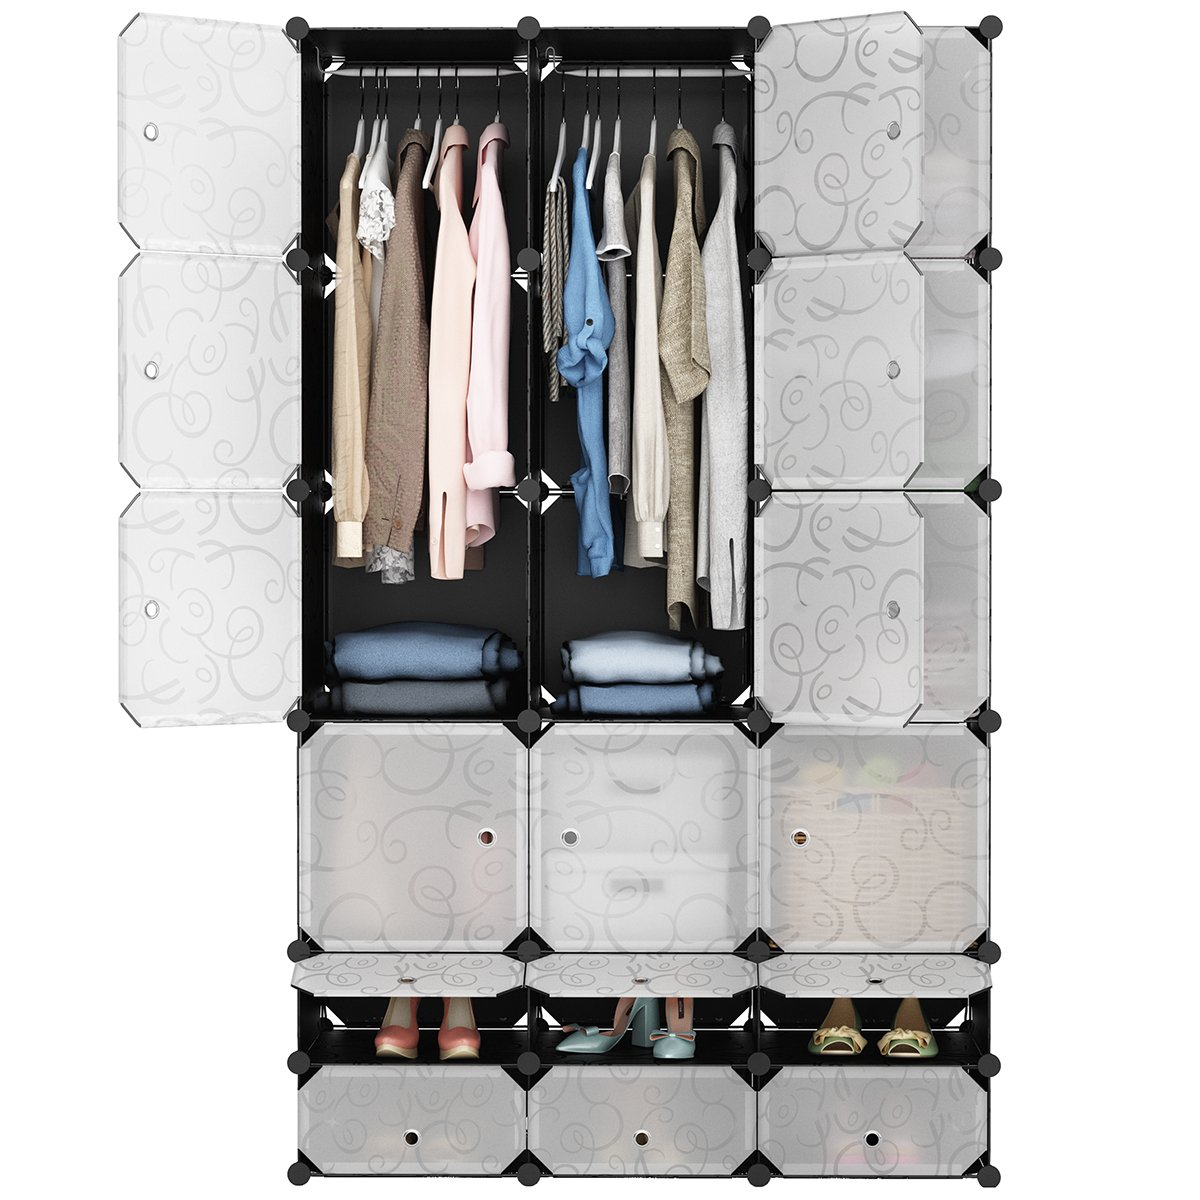 LANGRIA 18-Cube DIY Modular Shelving Storage Organizer Extra Large Wardrobe with Clothes Rod, Furniture for Shoes Clothes (Patterned Black)